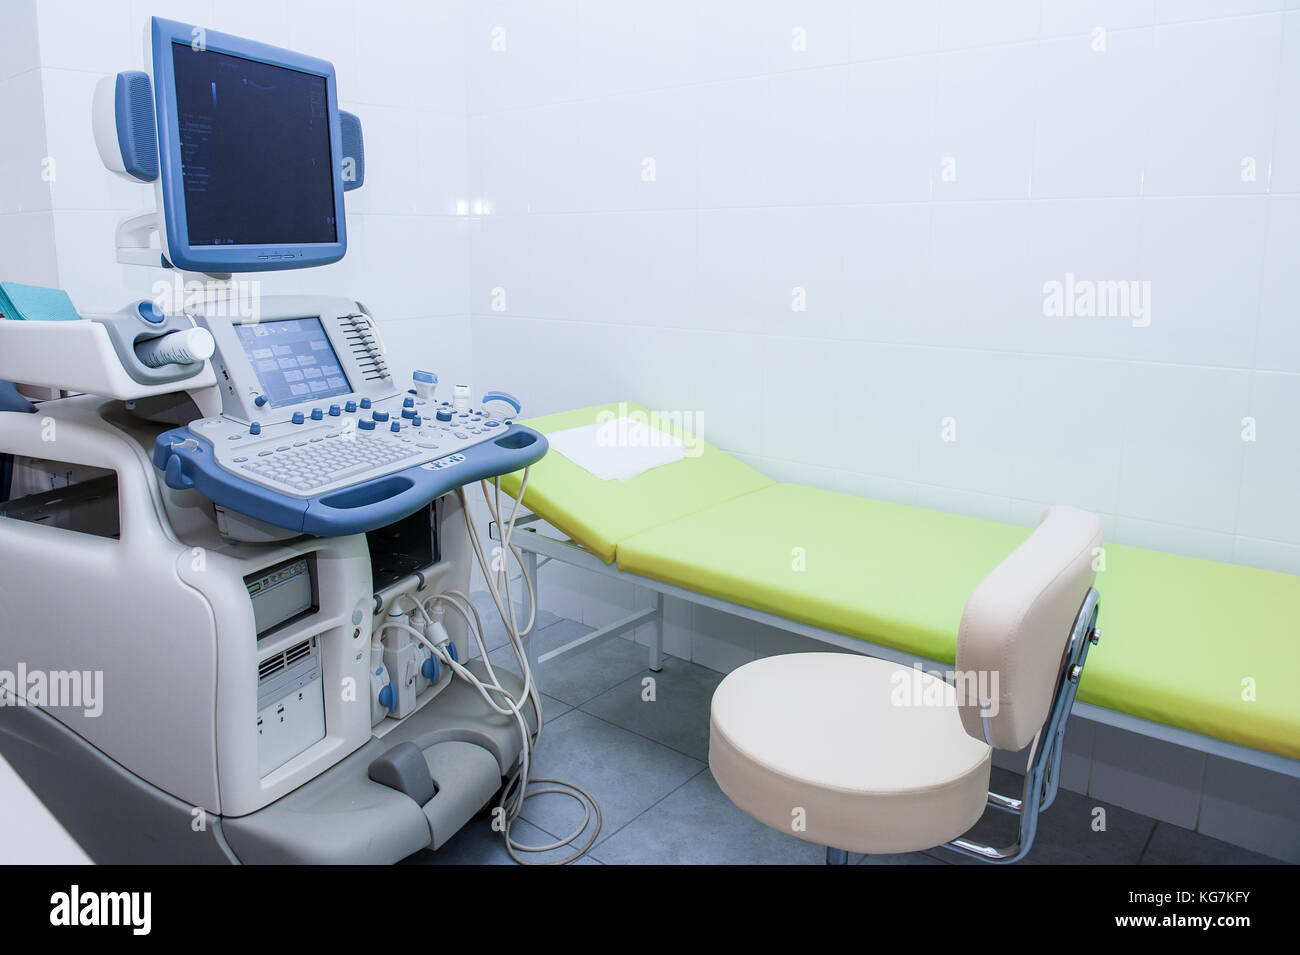 Interior of examination room with ultrasonography machine in hospital. Selective focus. - Stock Image